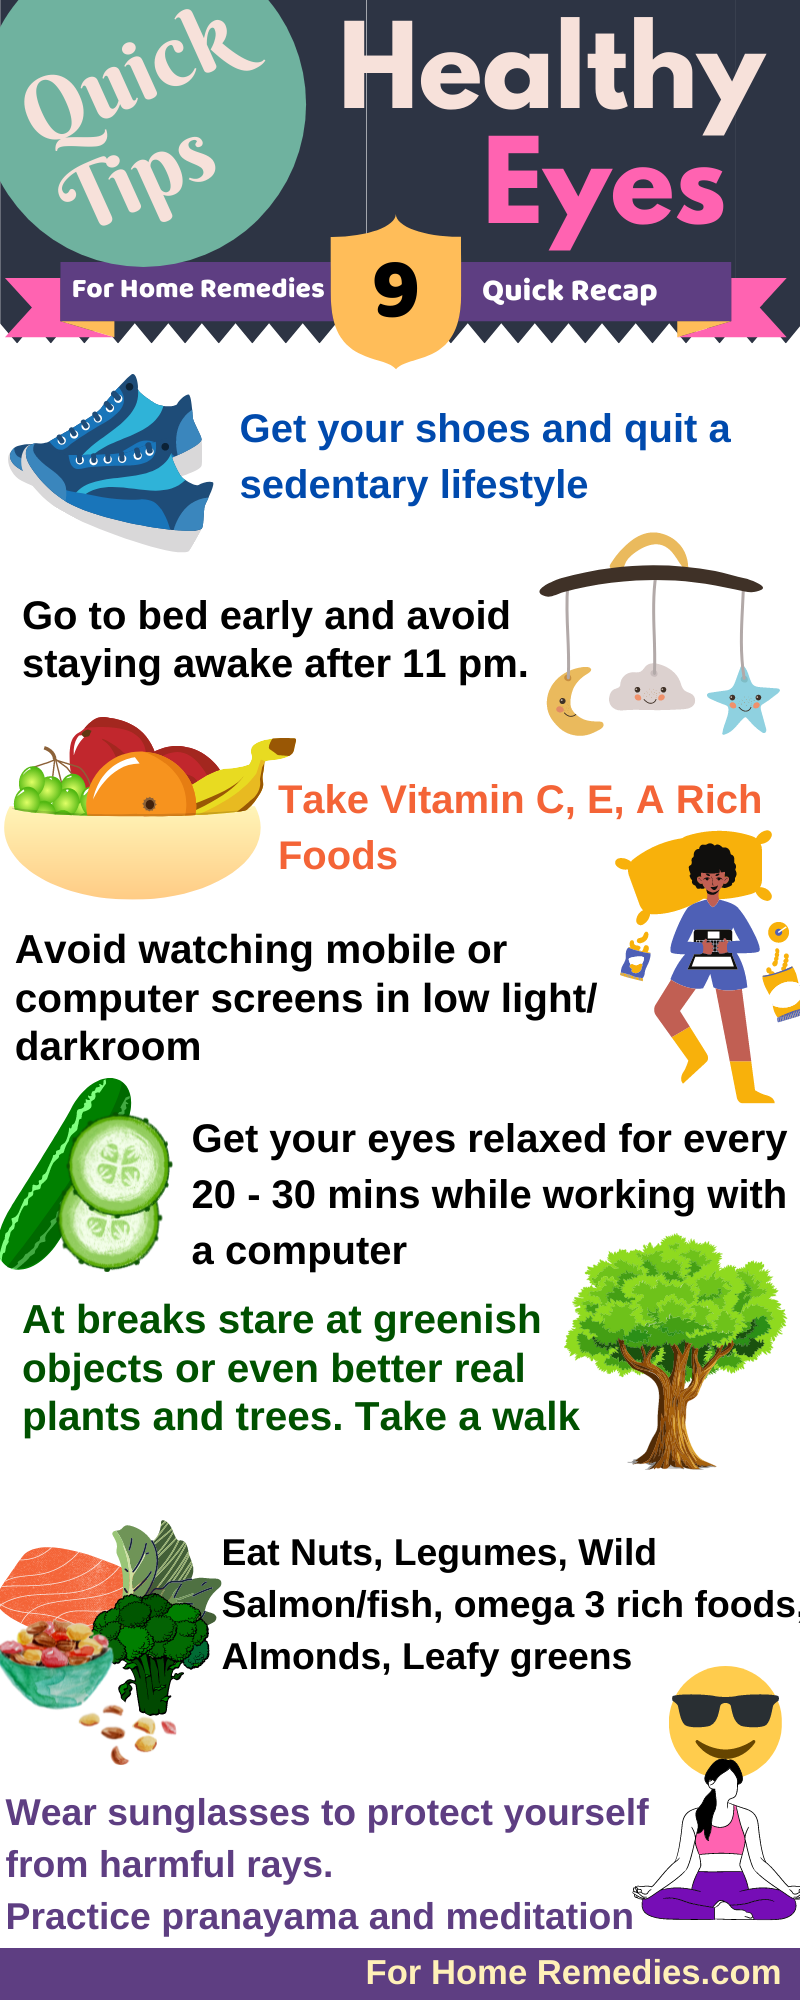 Best Foods & 14 Quick Ideas for Healthy Eyes